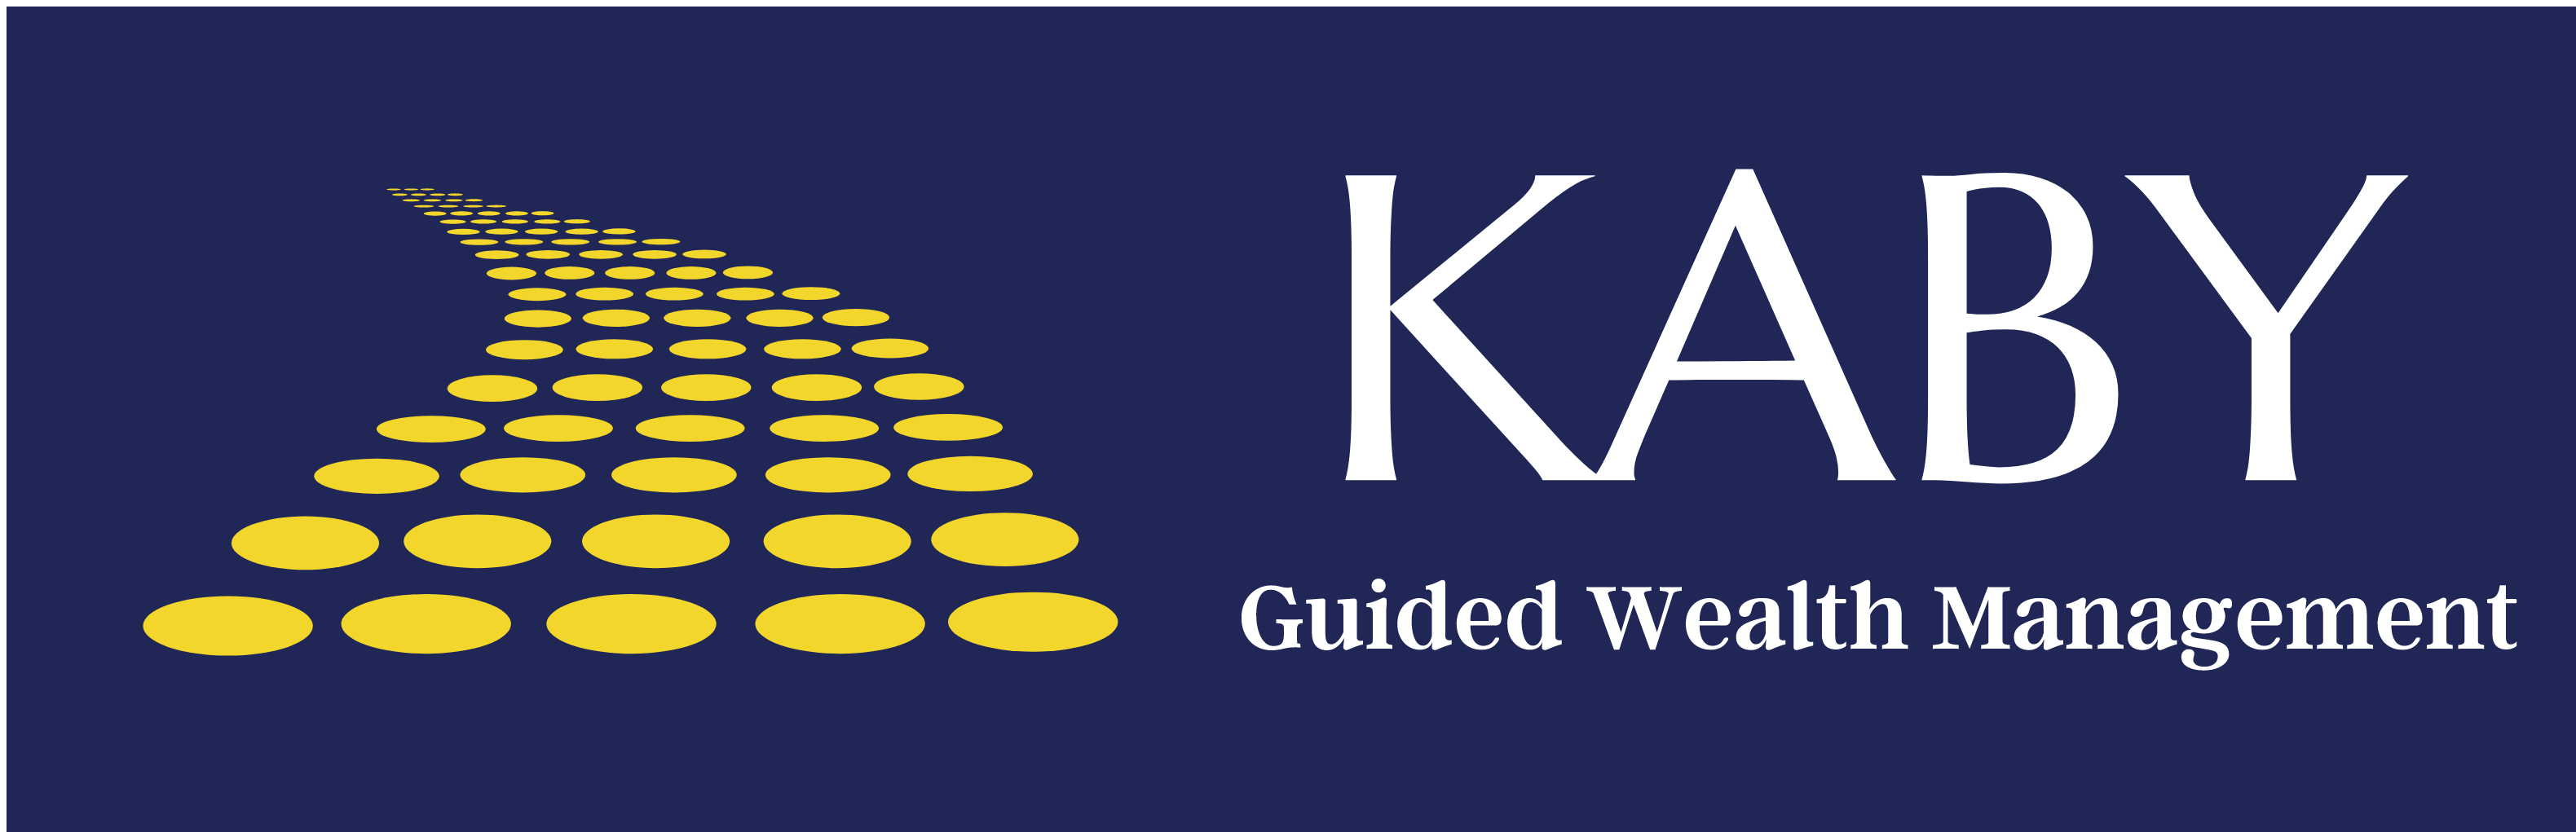 KABY Guided Wealth Management